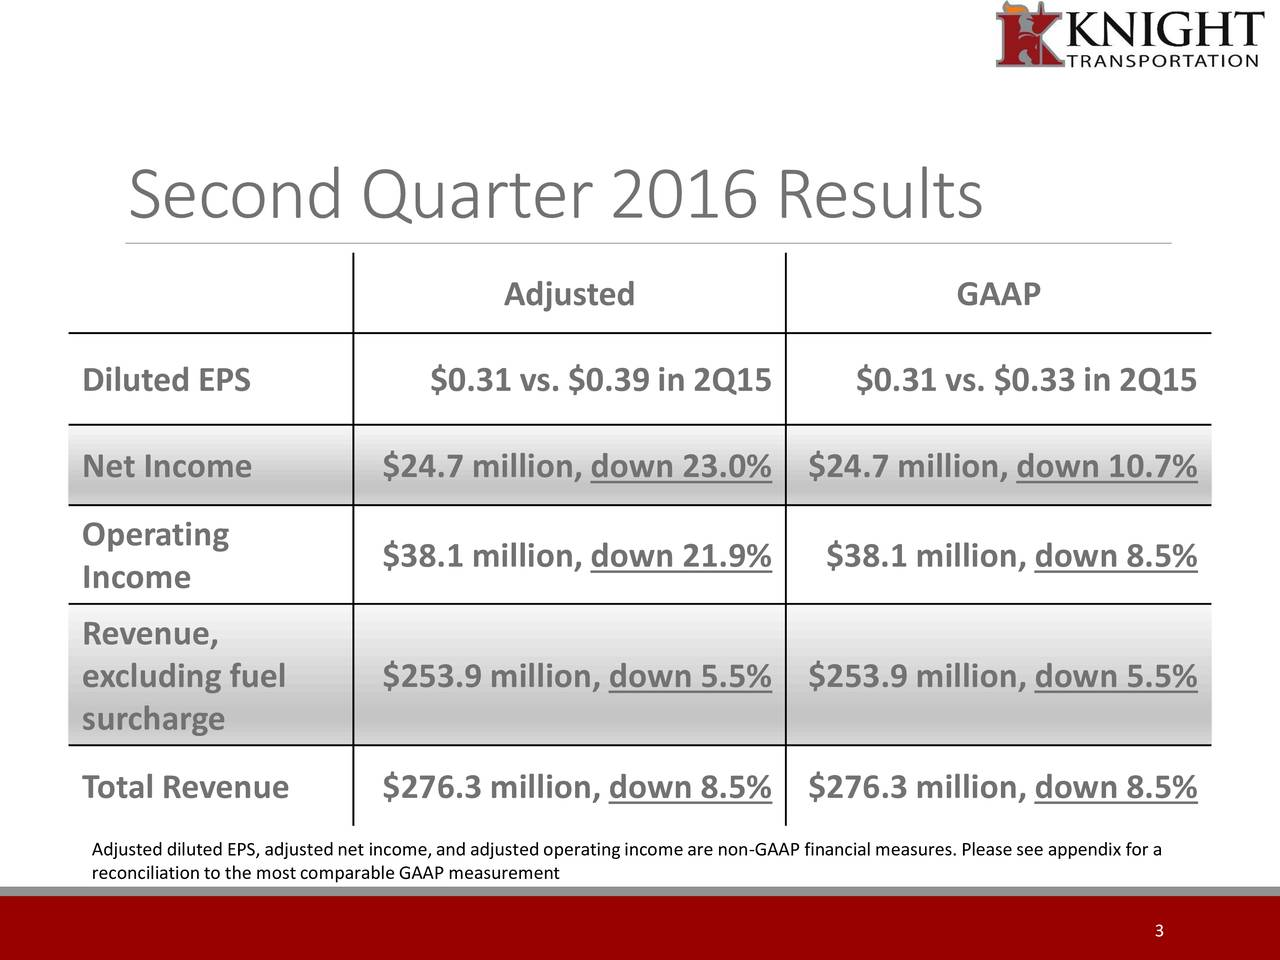 Adjusted GAAP Diluted EPS $0.31 vs. $0.39 in 2Q15 $0.31 vs. $0.33 in 2Q15 Net Income $24.7 million, down 23.0% $24.7 million, down 10.7% Operating $38.1 million, down 21.9% $38.1 million, down 8.5% Income Revenue, excluding fuel $253.9 million, down 5.5% $253.9 million, down 5.5% surcharge Total Revenue $276.3 million, down 8.5% $276.3 million, down 8.5% Adjusted diluted EPS, adjusted net income,and adjusted operatingincomeare non-GAAP financial measures.Pleasesee appendix for a reconciliationto the mostcomparable GAAP measurement 3